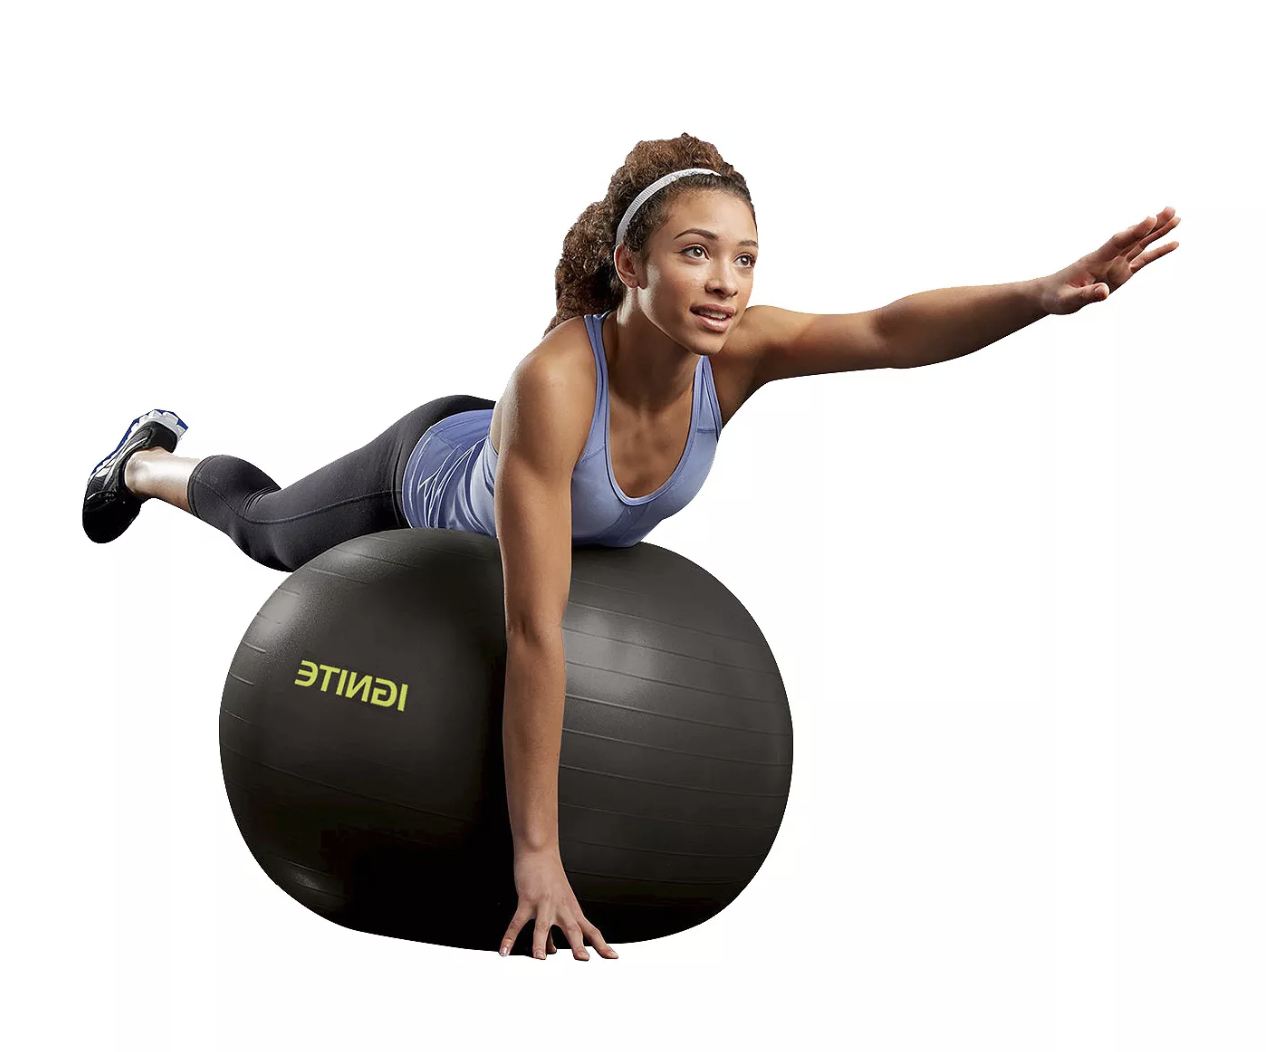 Model balancing on black stability ball